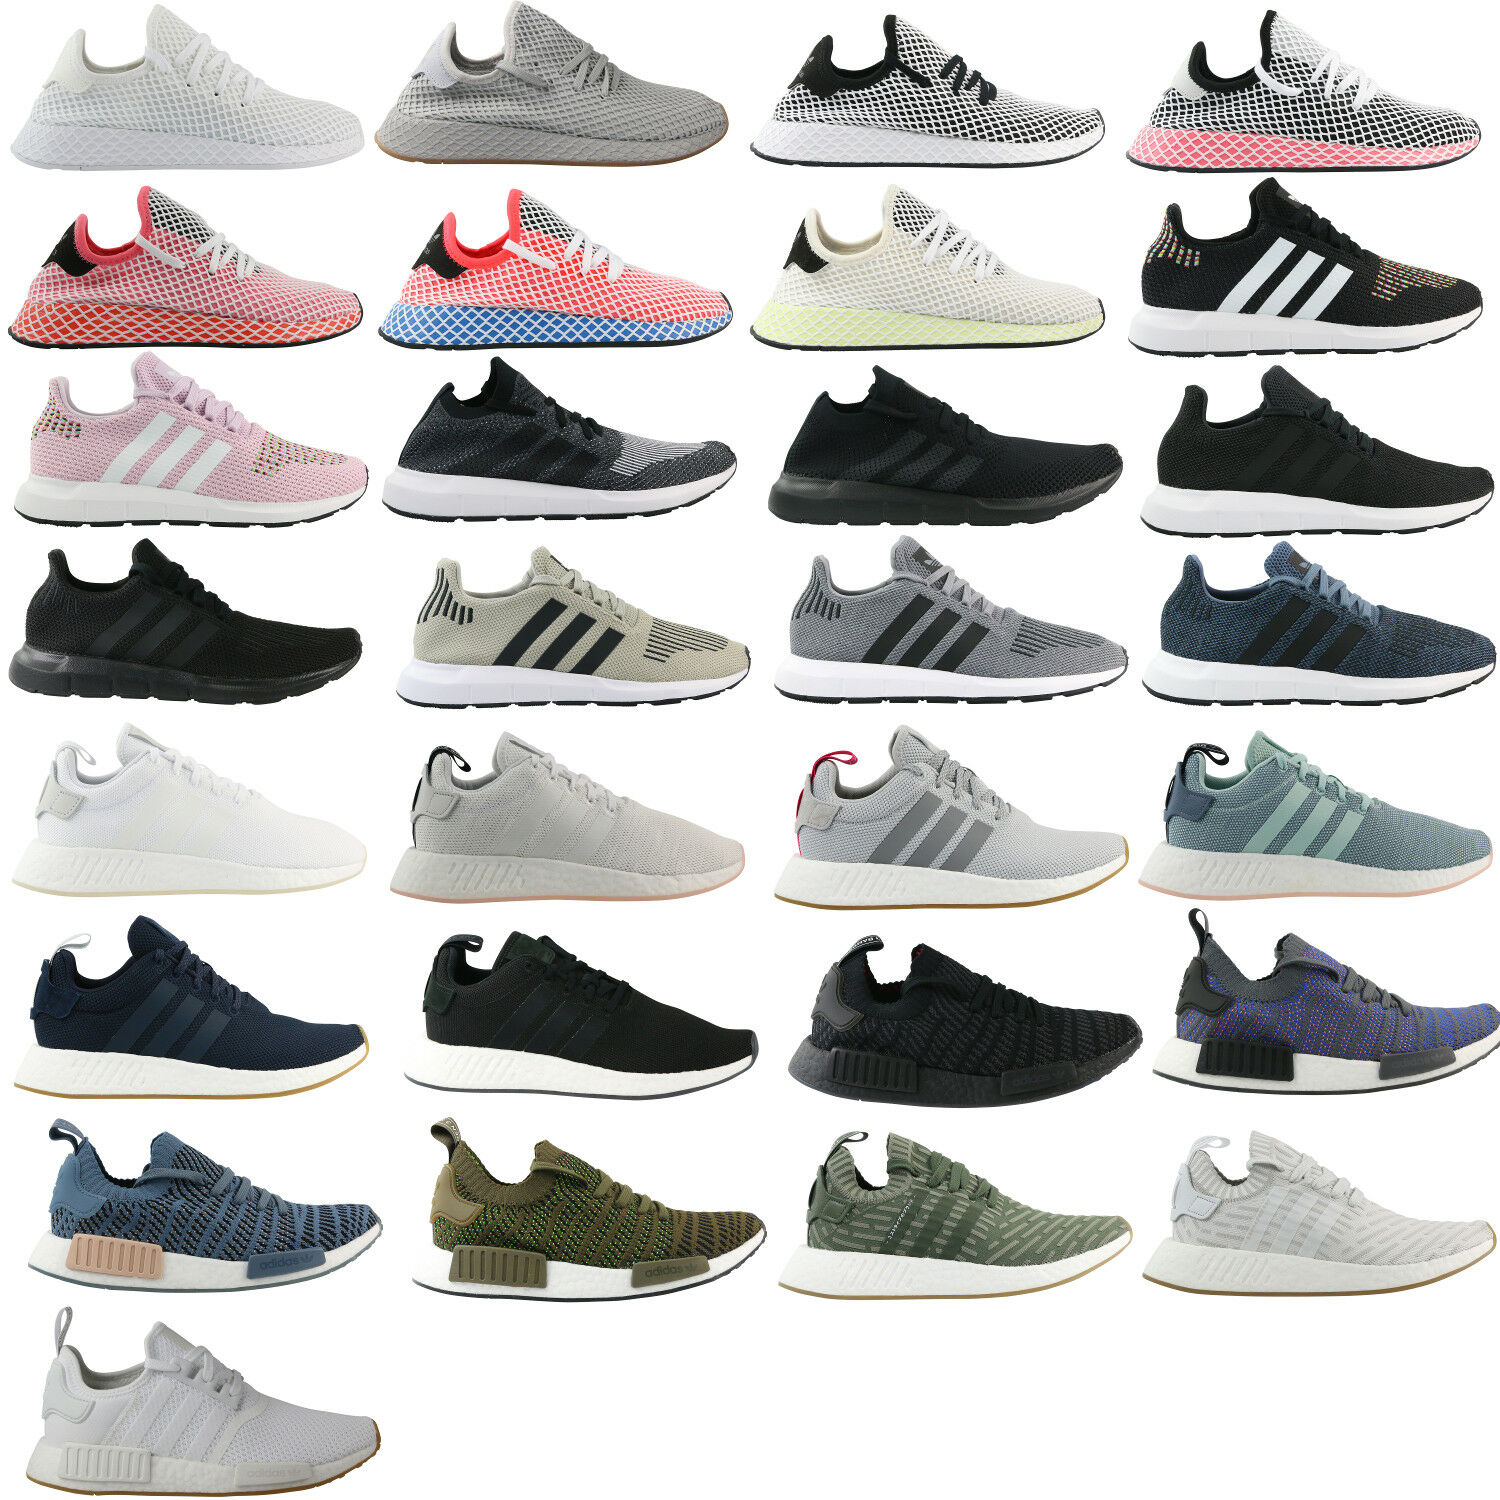 Zapatos casuales salvajes Adidas Originals deerupt Runner nmd Pharrell Williams Swift run zapatos cortos